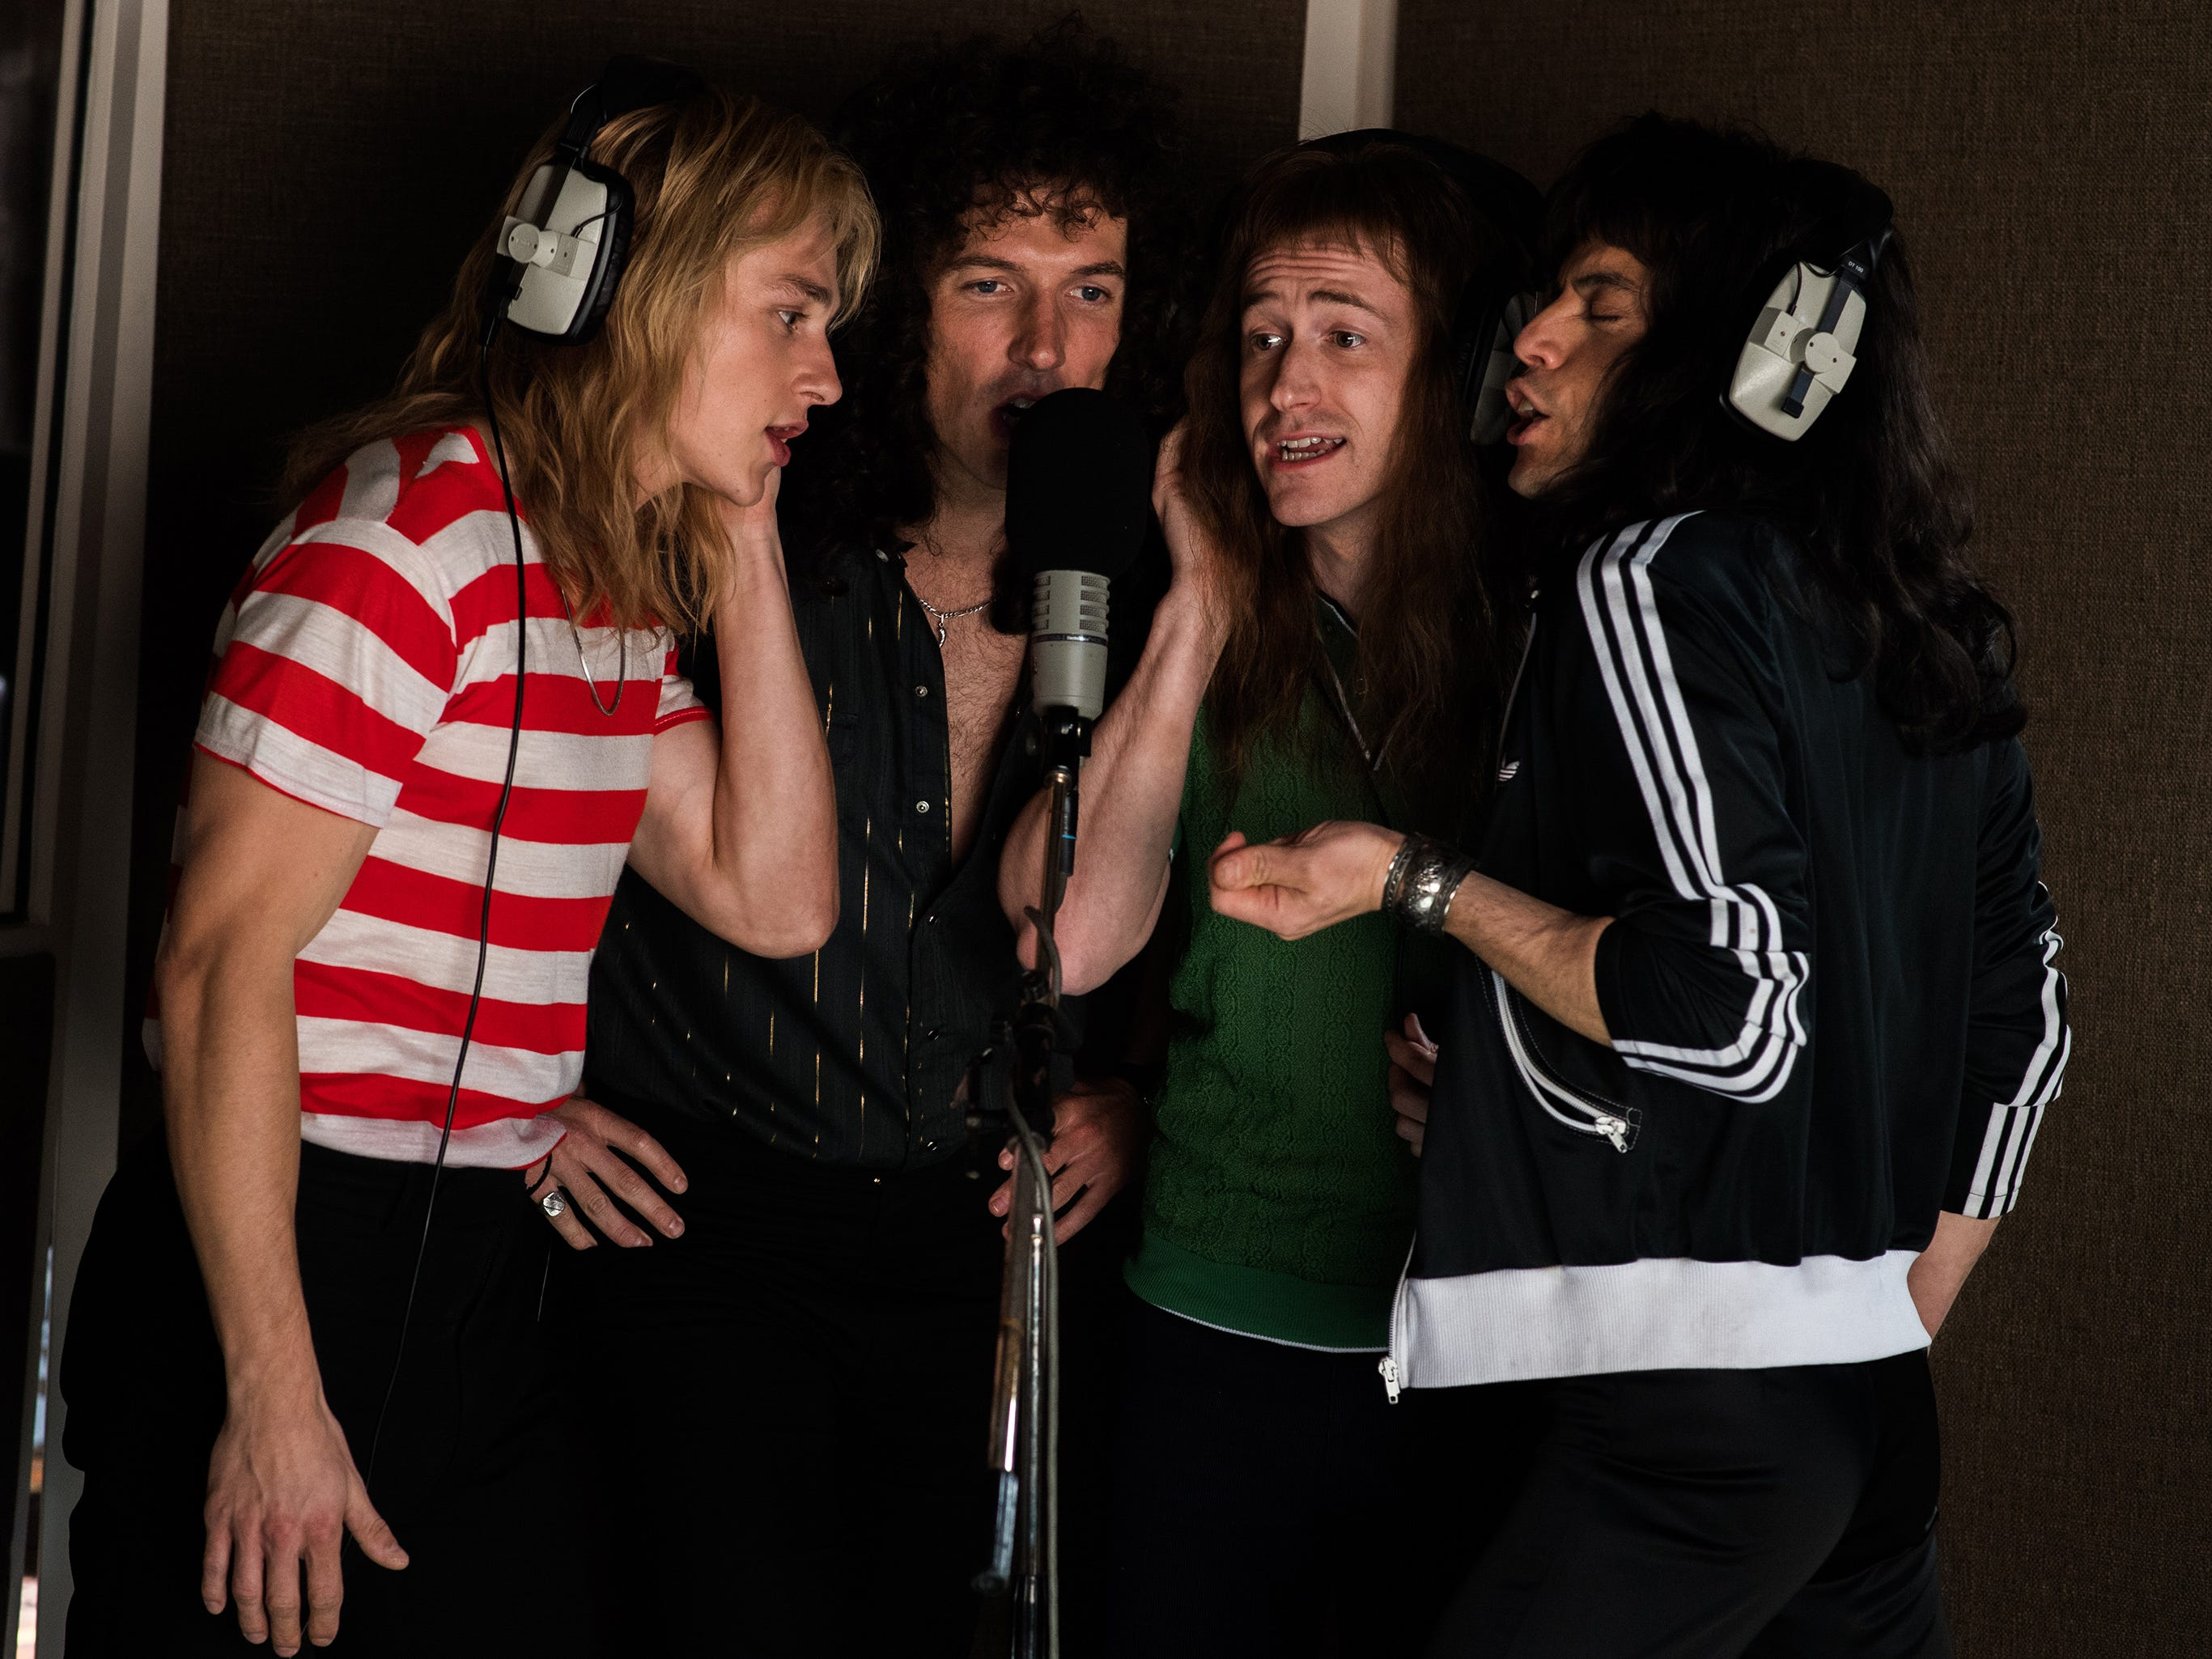 DF-10193 – L-R: Ben Hardy (Roger Taylor), Gwilym Lee (Brian May), Joe Mazzello (John Deacon), and Rami Malek (Freddie Mercury) star in Twentieth Century Fox's BOHEMIAN RHAPSODY. Photo Credit: Alex Bailey.